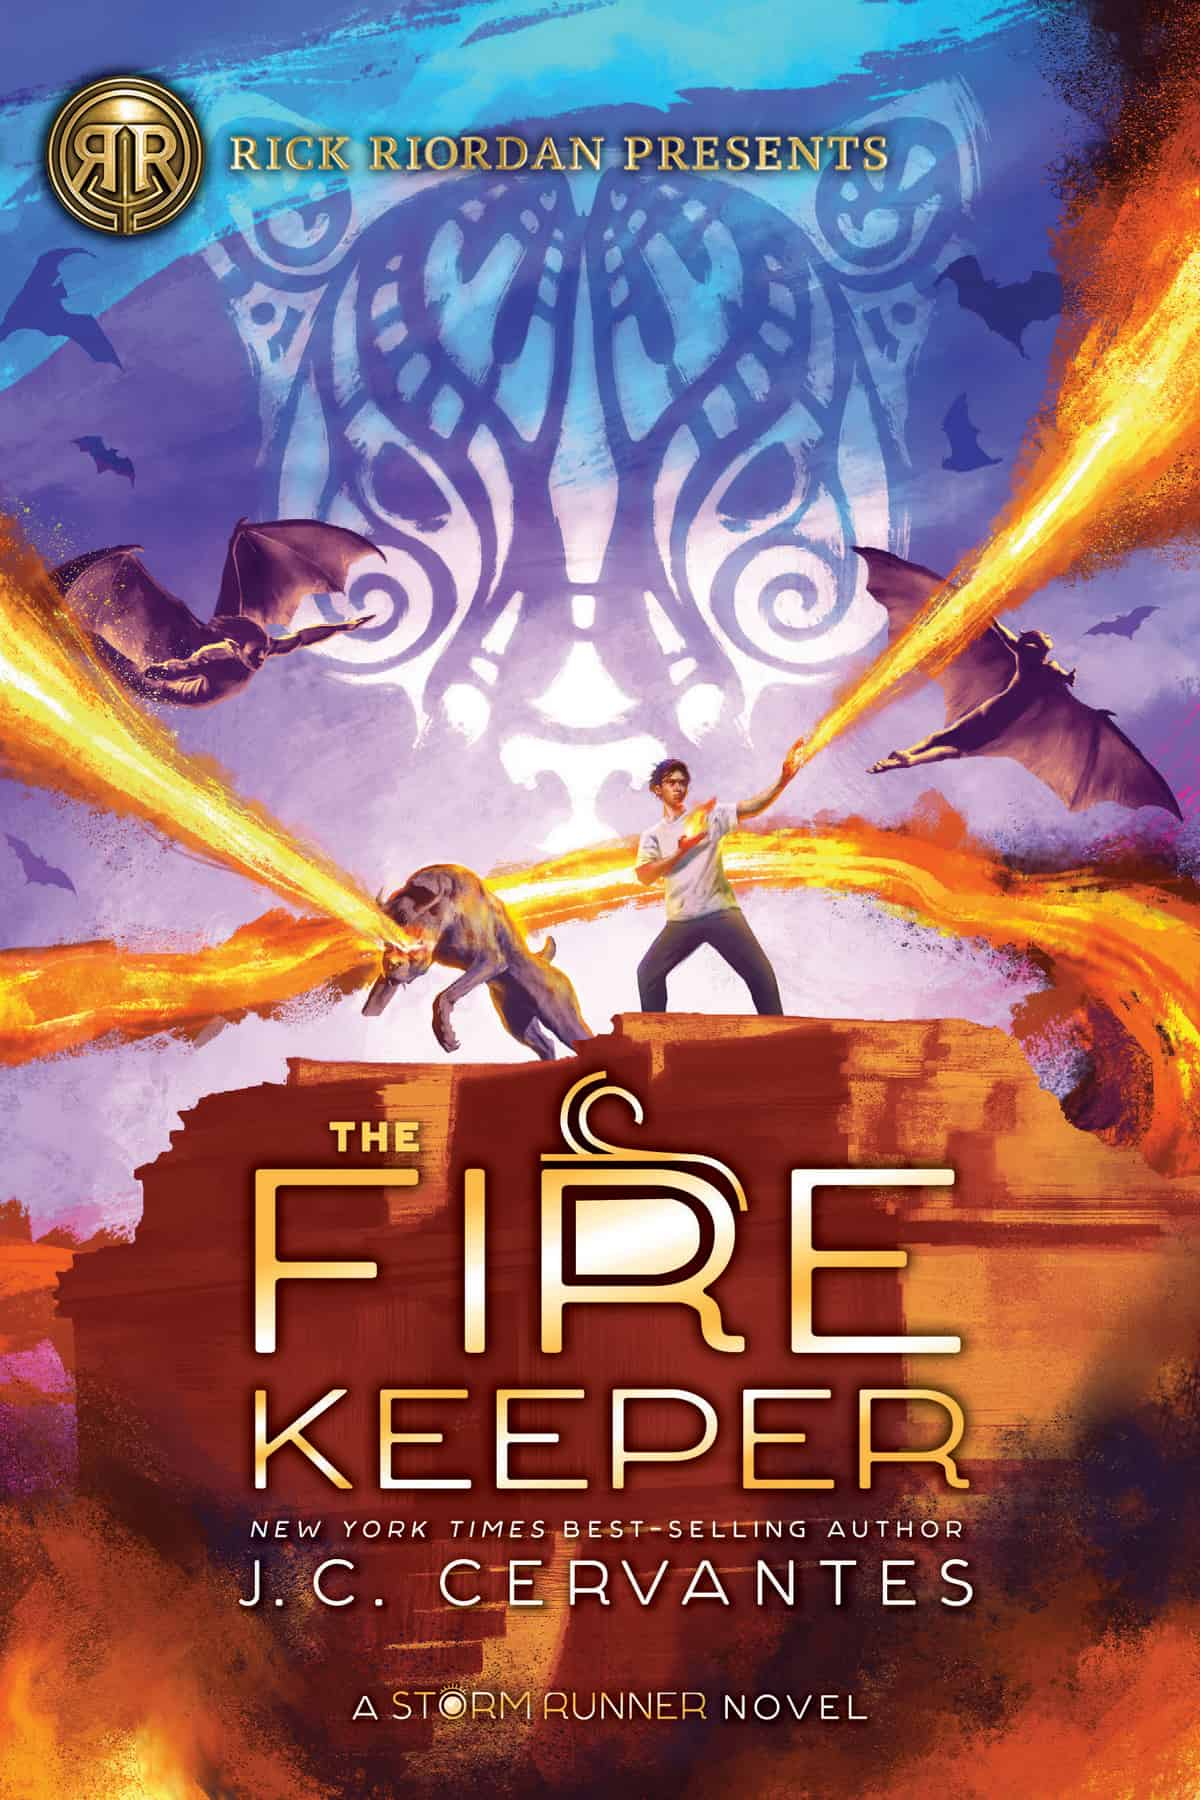 The Fire Keeper is a brilliantly plotted action-packed sequel to Cervantes\' masterful middle-grade book, The Storm Runner. Check it out now!